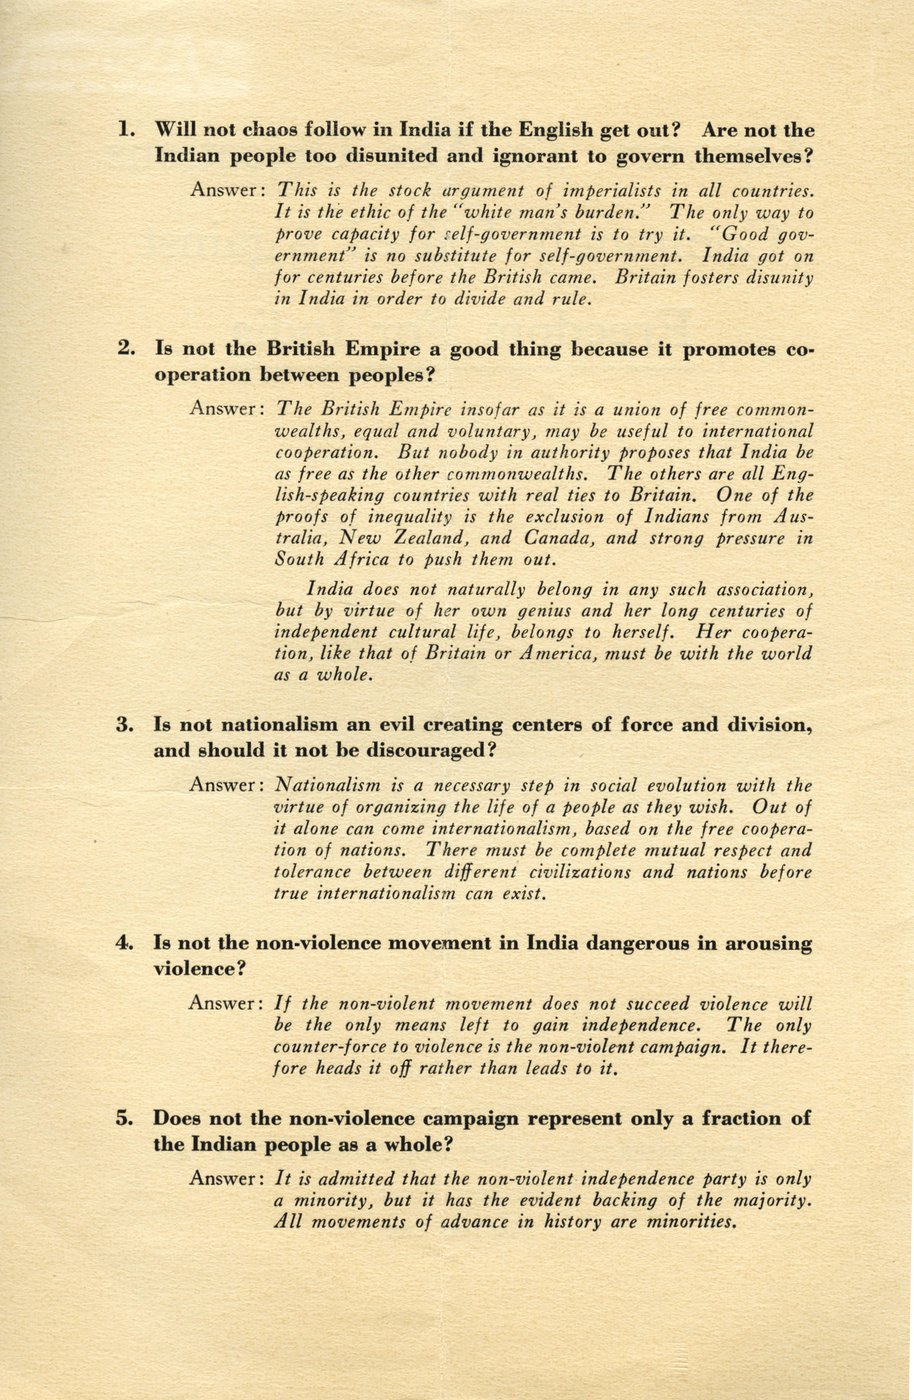 Answers To The Objections Commonly Raised Against Freedom